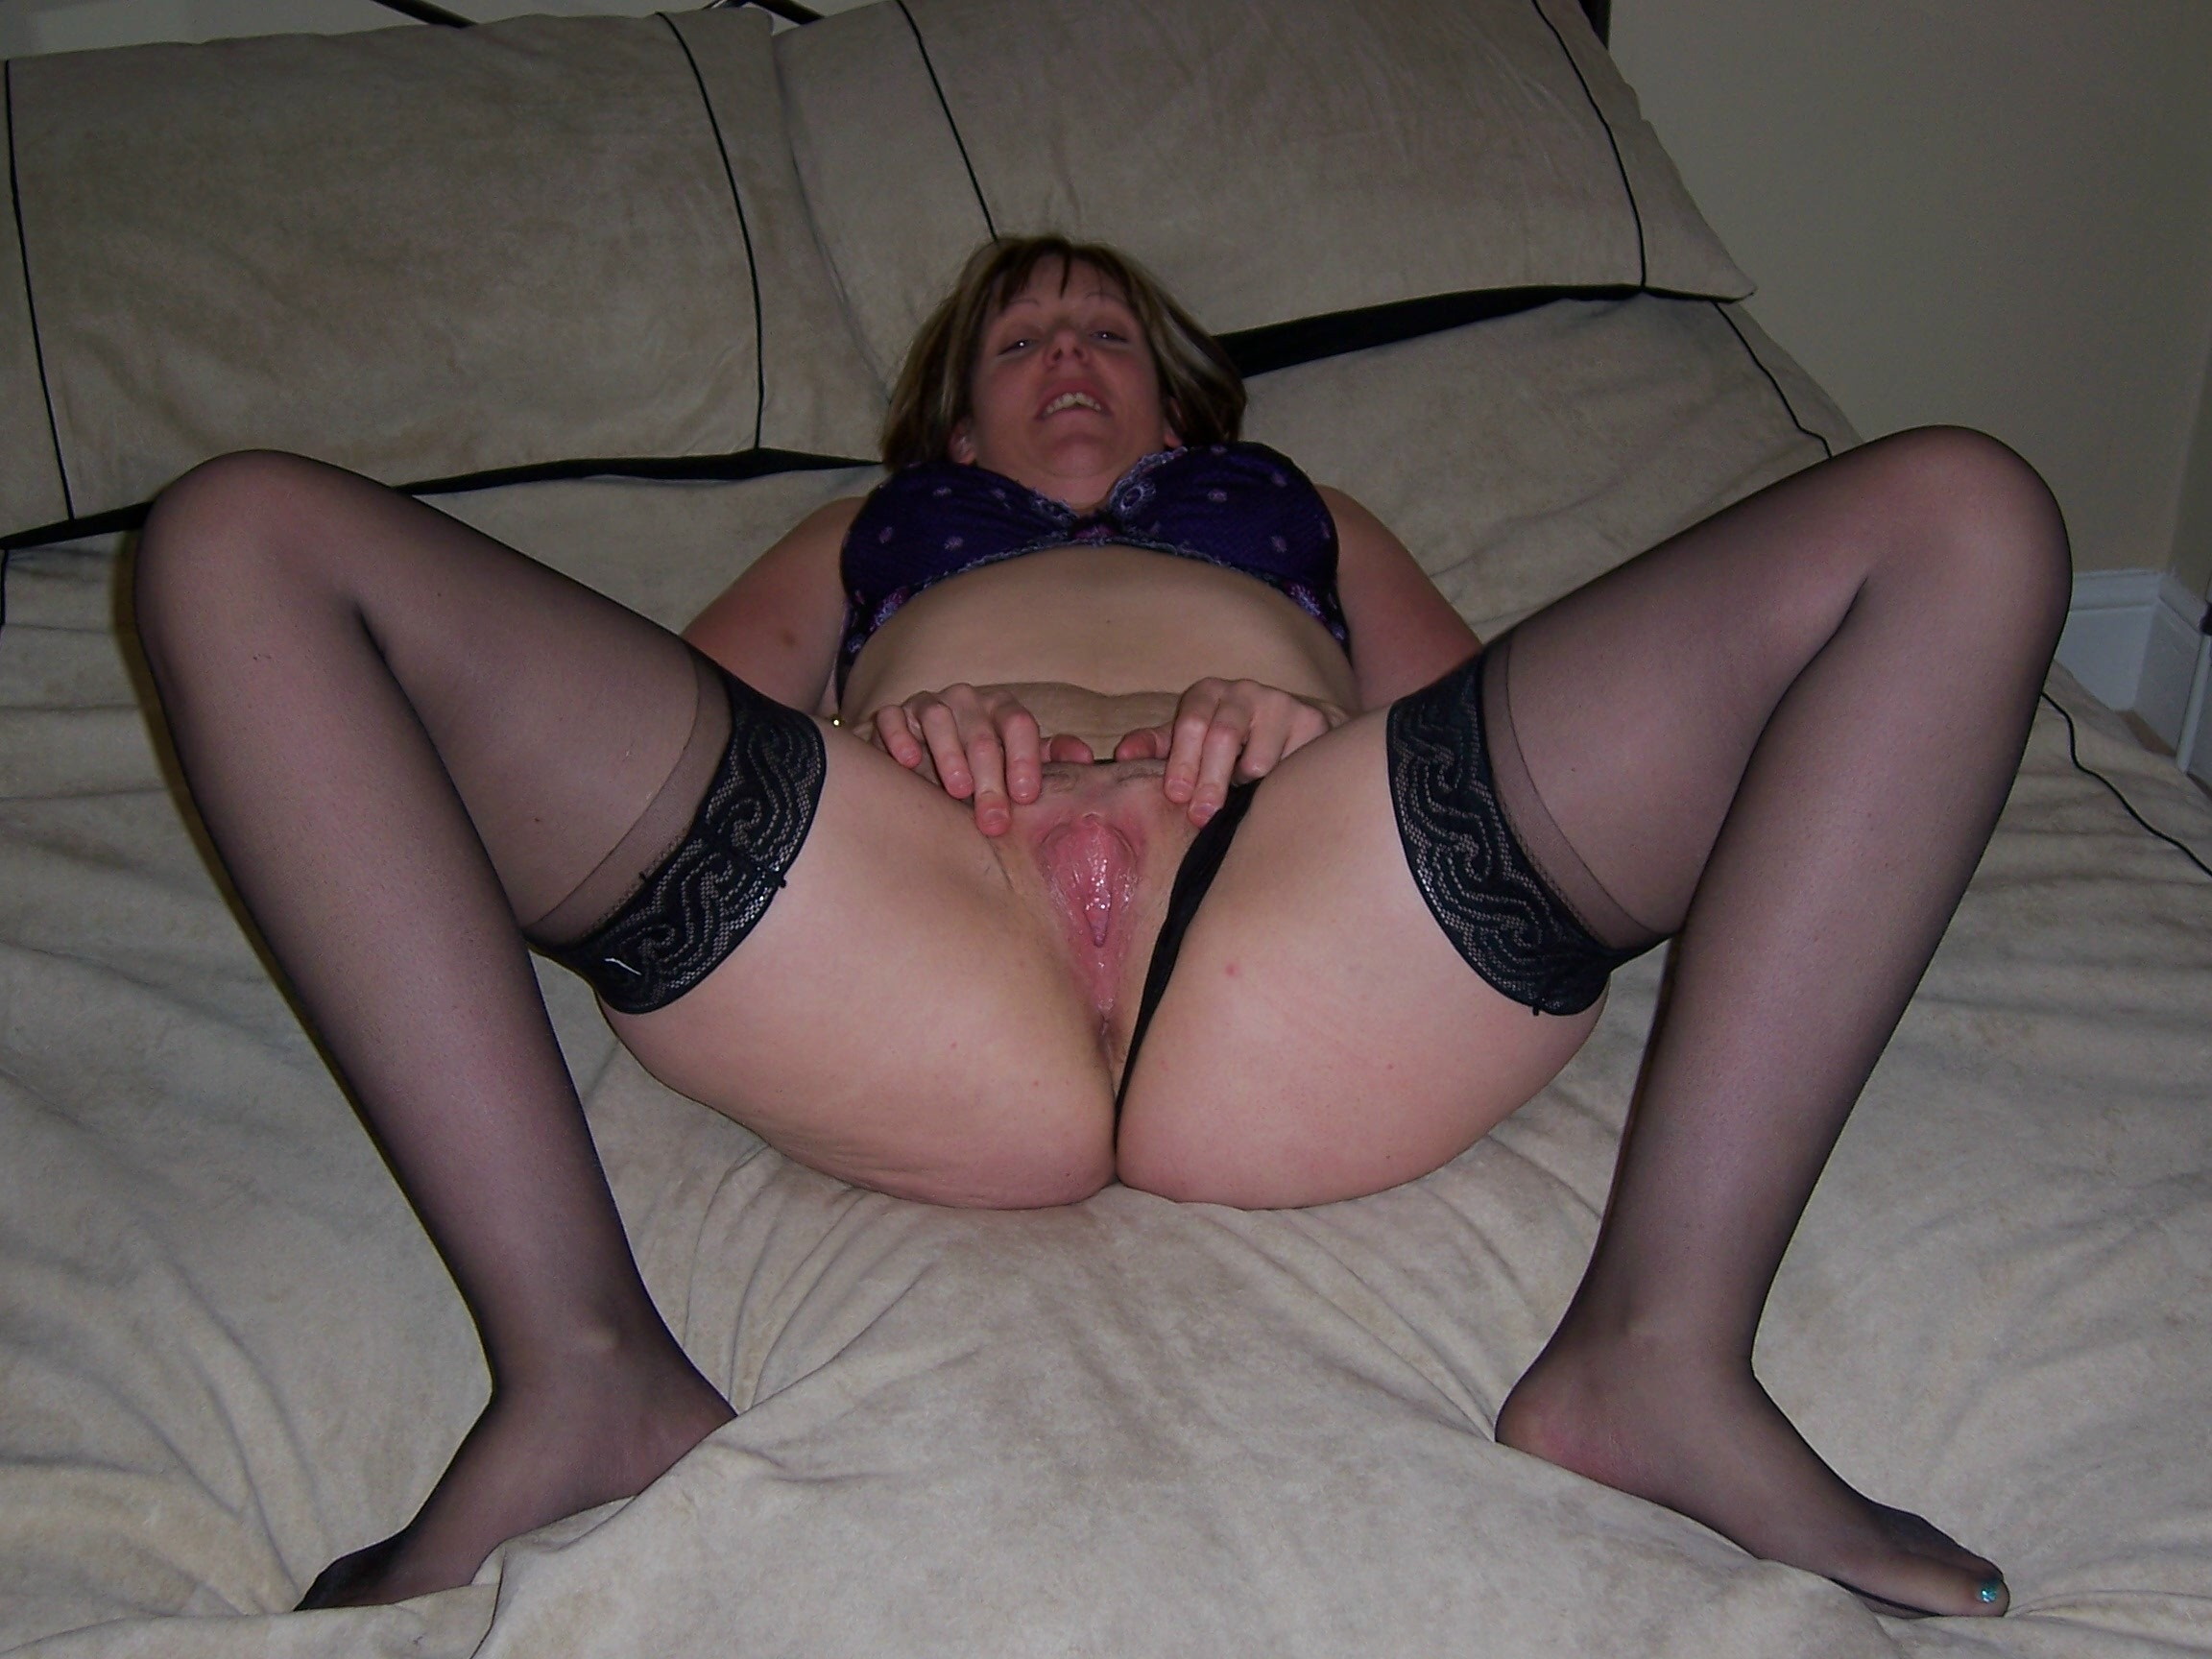 55 year old slutwife amp cuckhub - 3 part 4